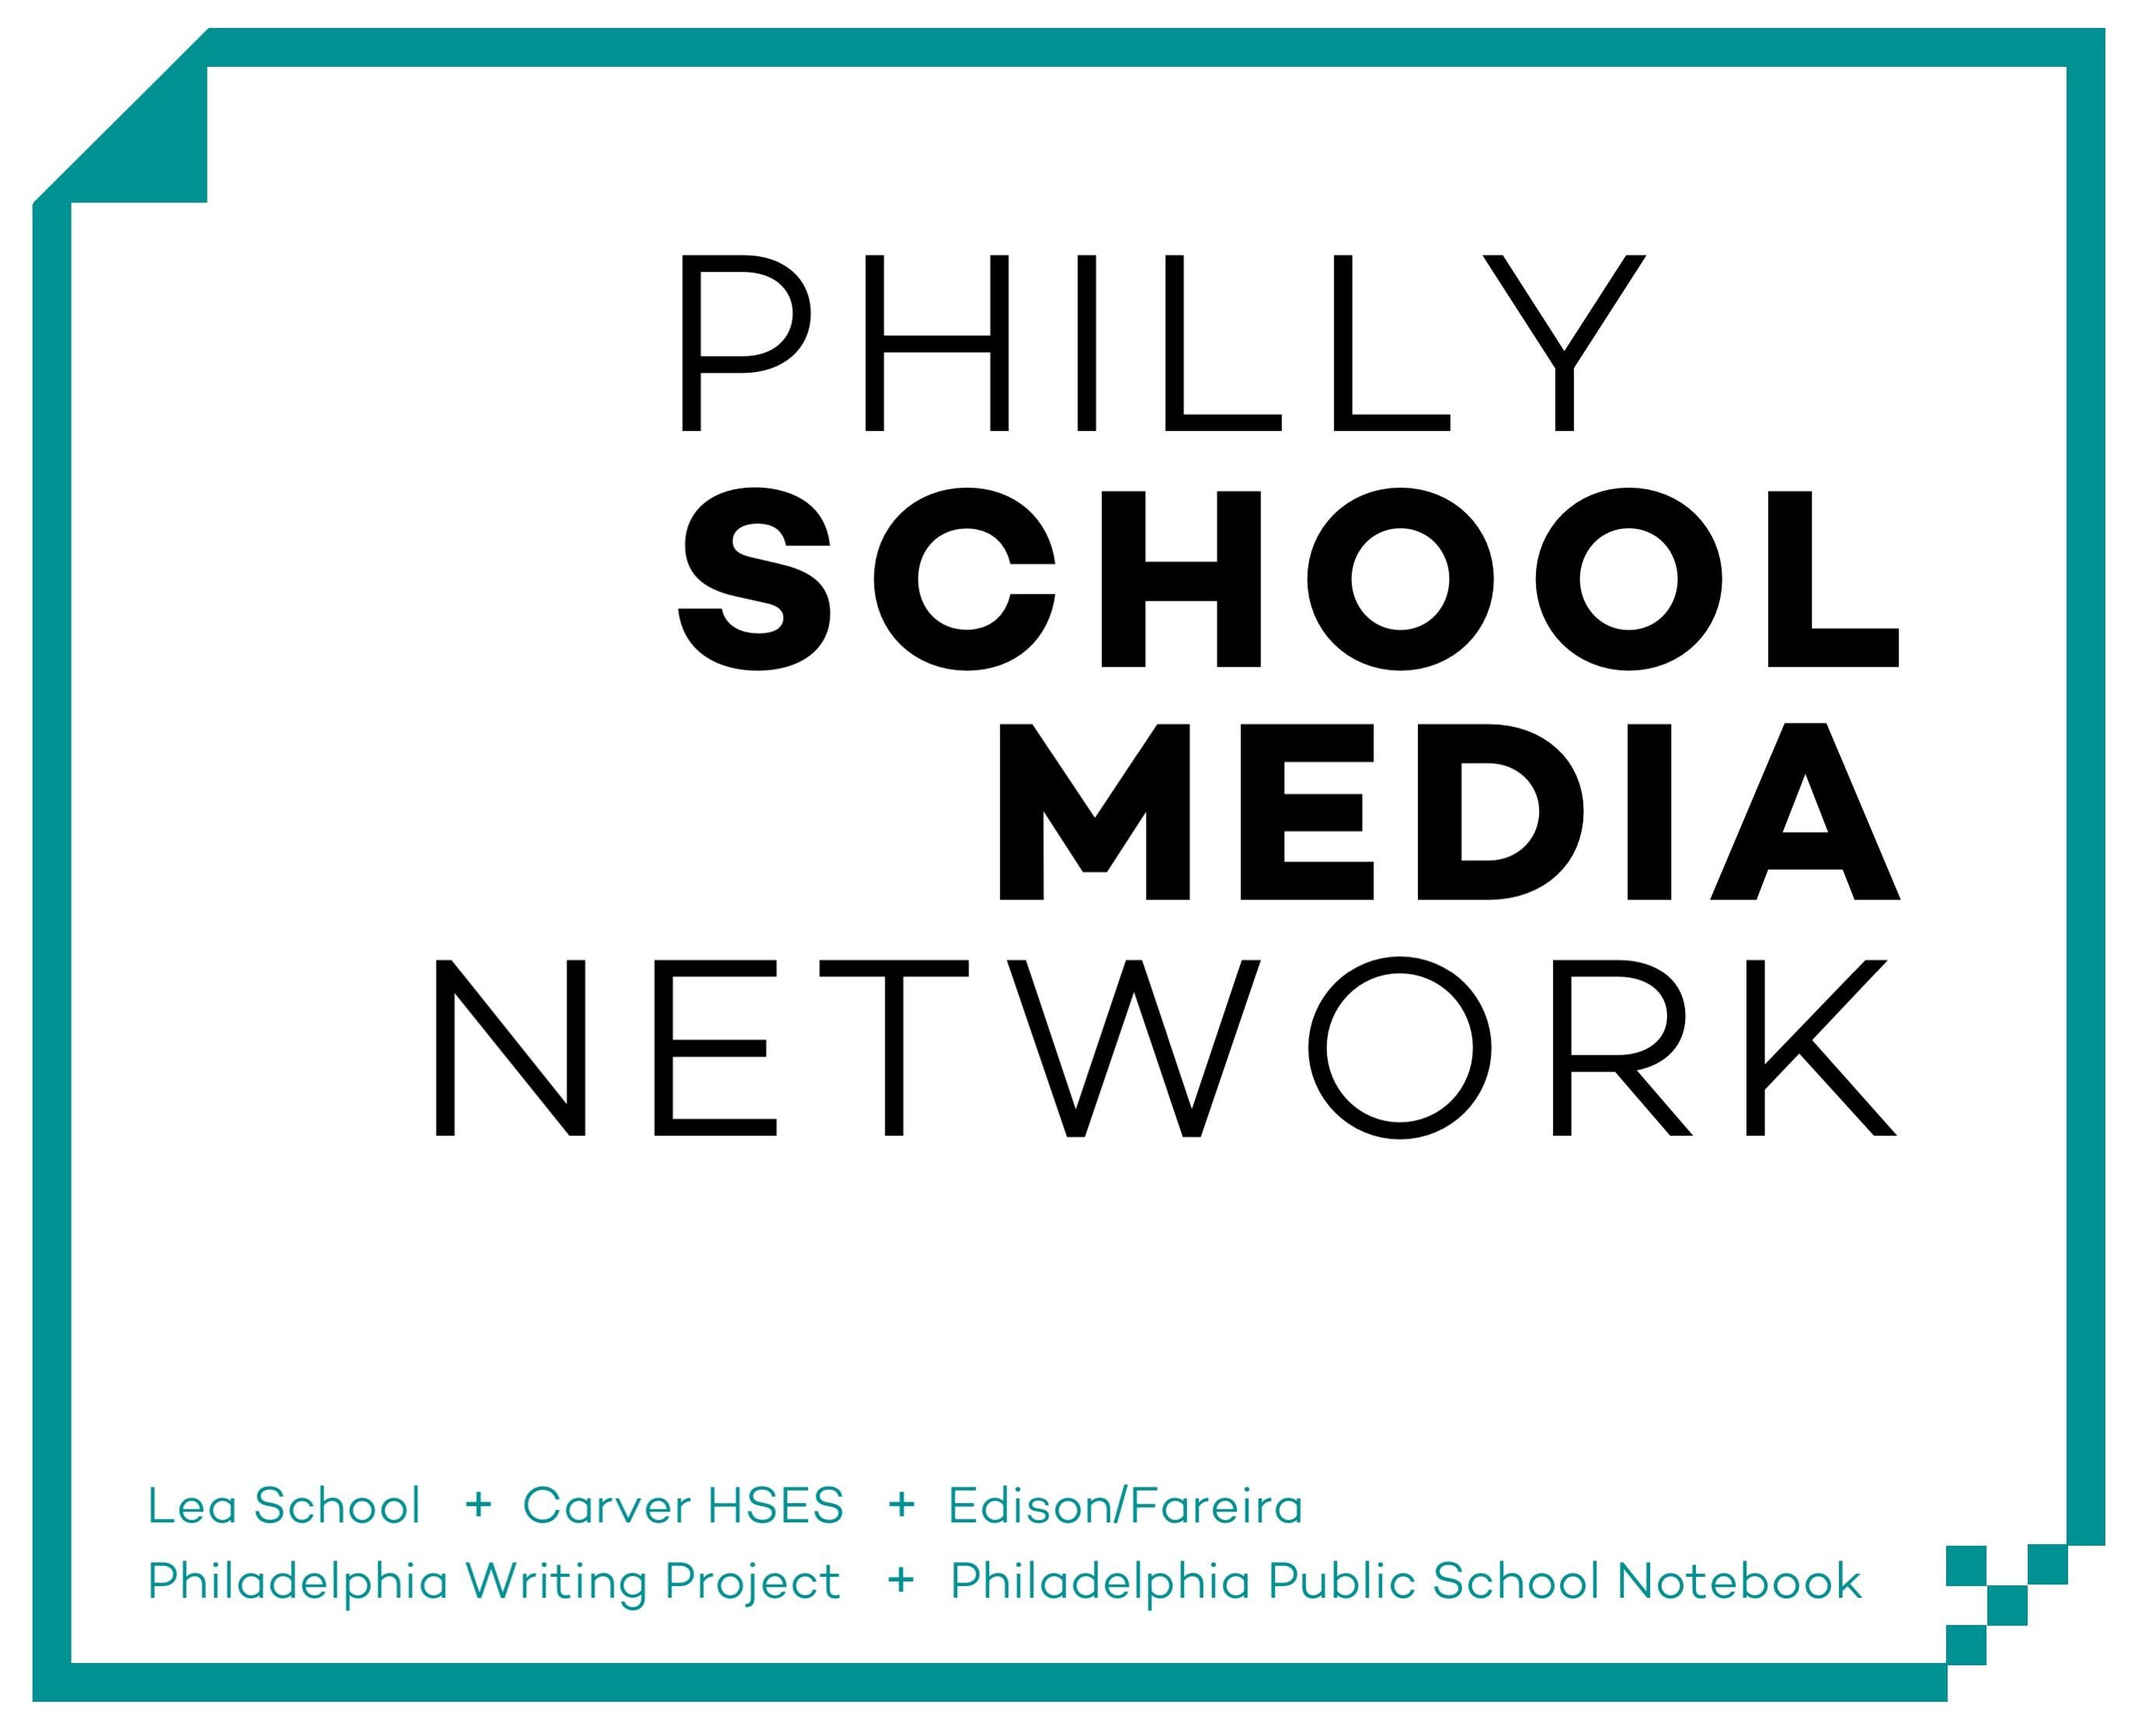 Philly School Media Network: Nurturing Journalism and Student Voices